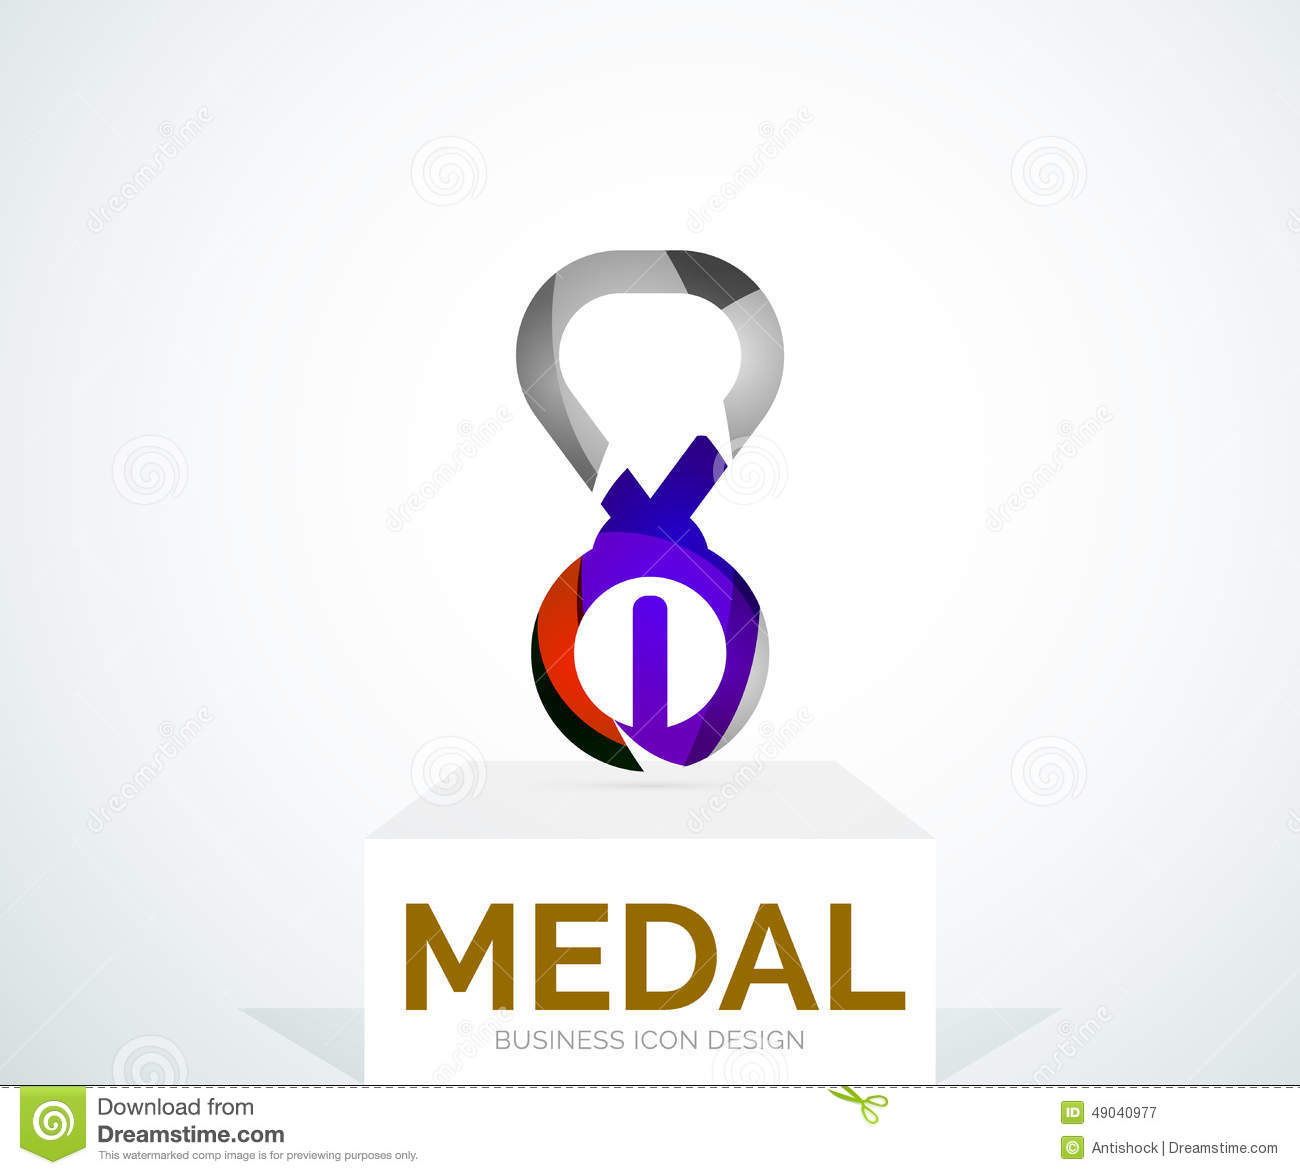 Abstract Colorful Logo Design Medal Stock Vector - Image: 49040977